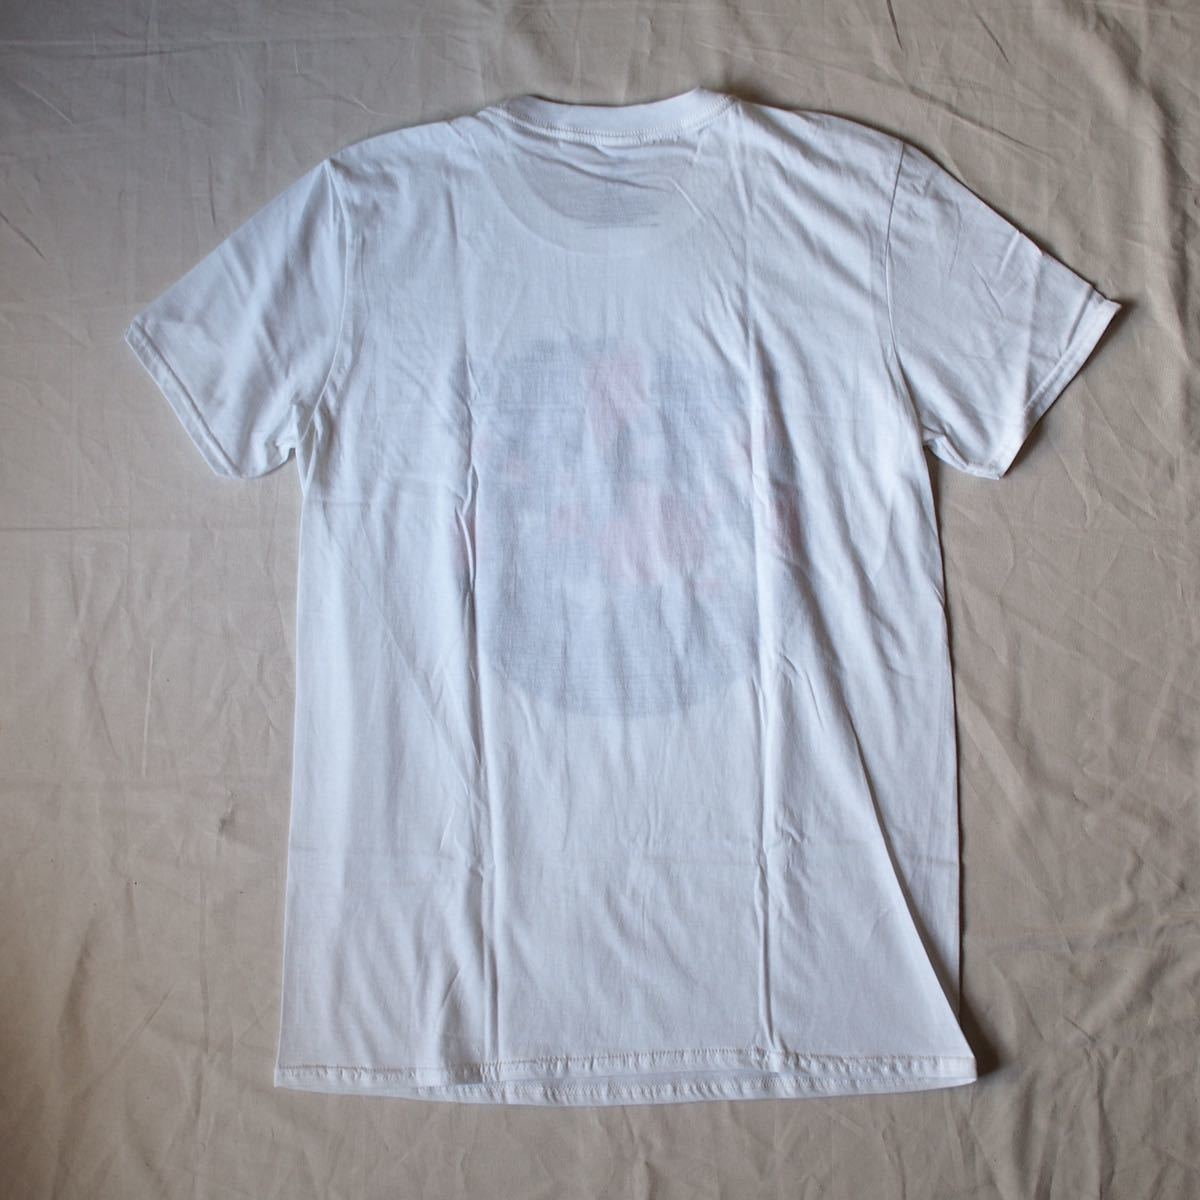 Official[The Jam]M ジャム Tシャツ バンド Nirvana Blur Sonic Youth oasis joy division Stone Roses The Cure Kinks Beatles clash_画像6